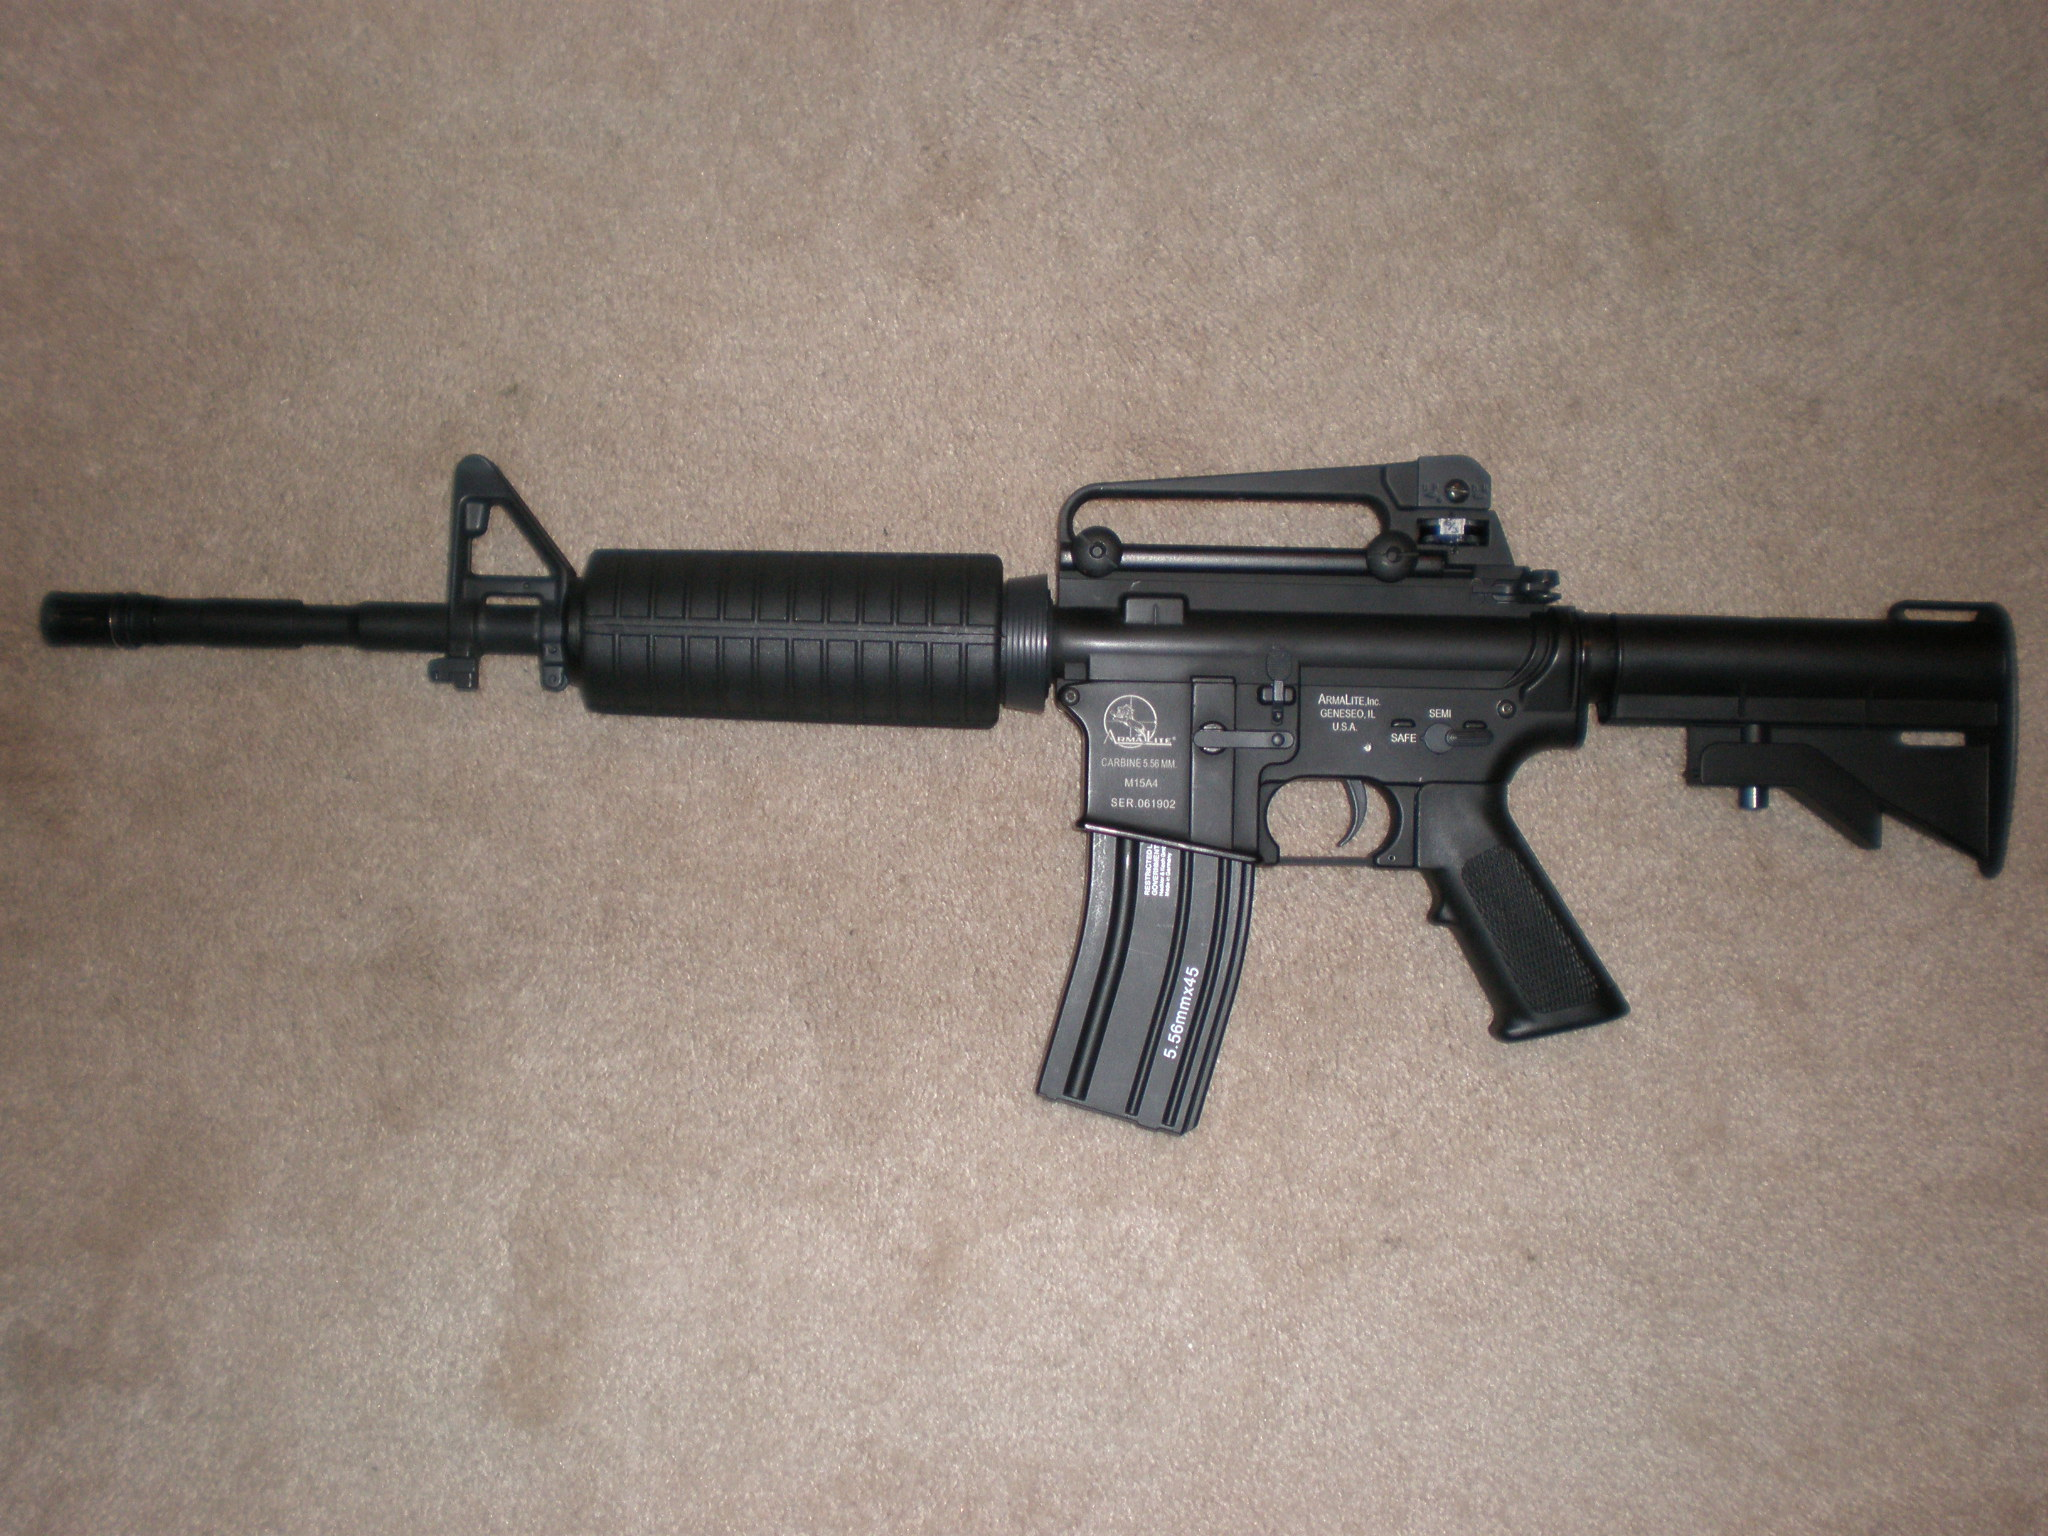 File:Airsoft M15A4 Carbine.JPG - Wikipedia